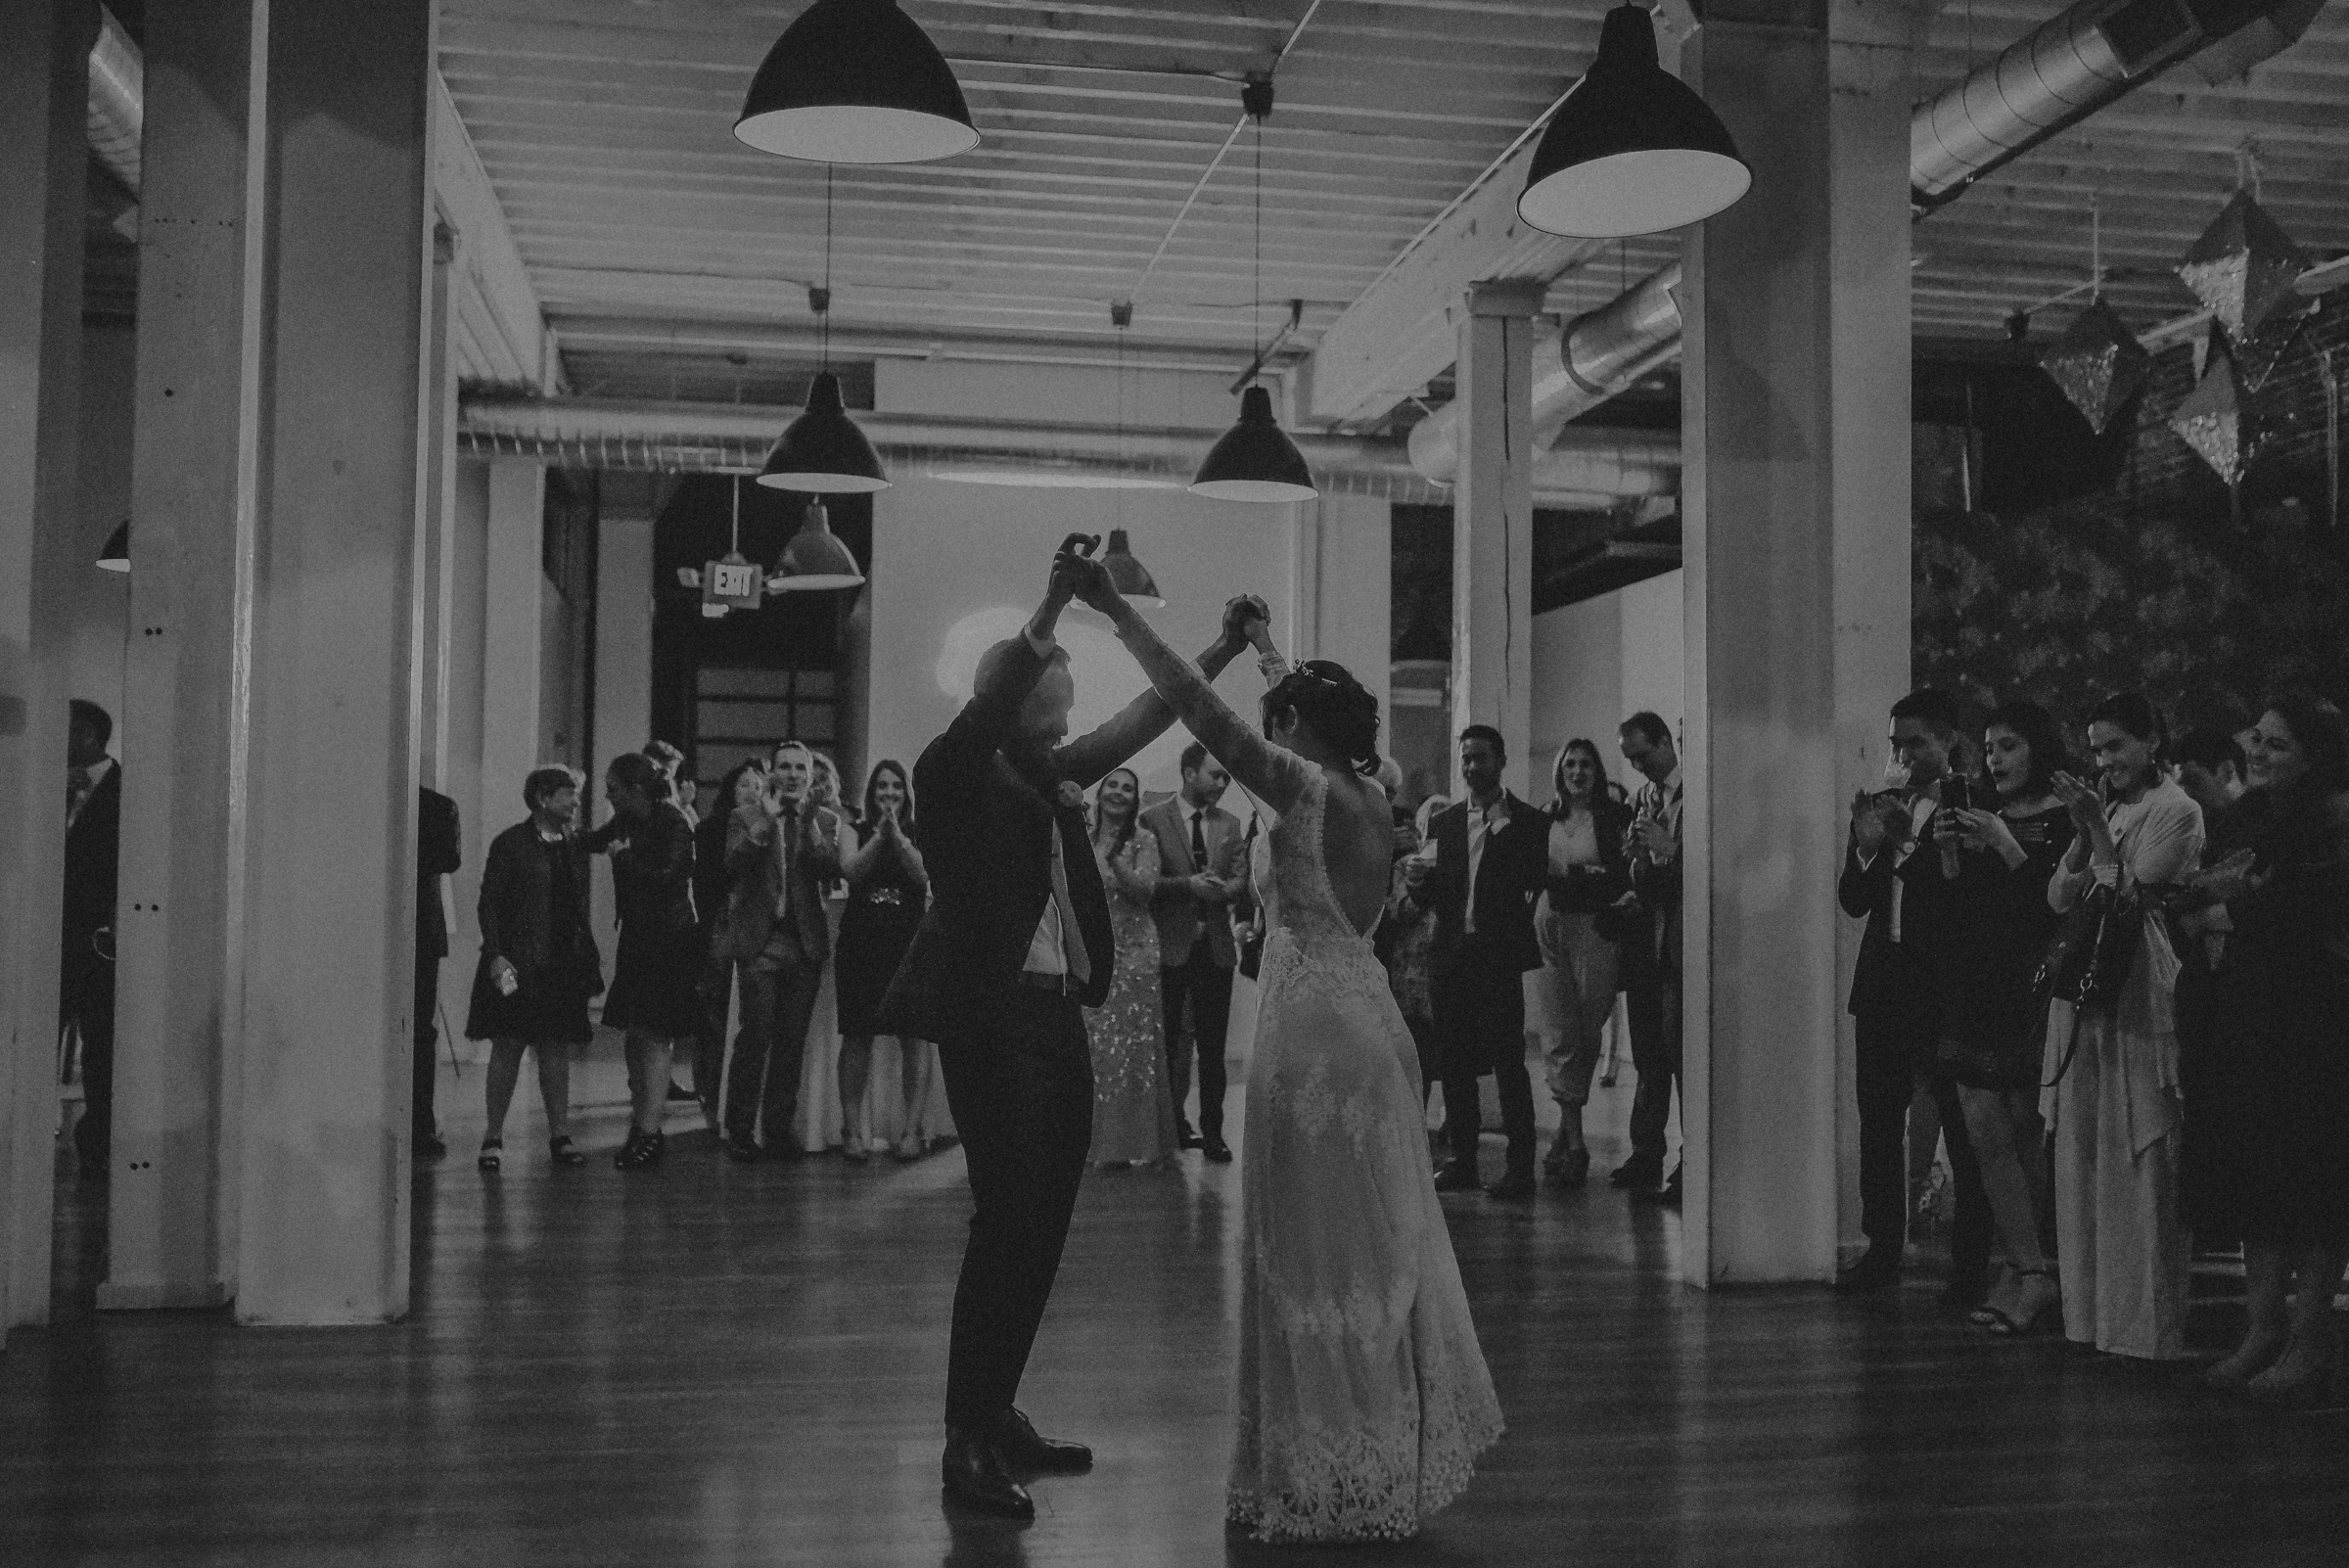 Isaiah + Taylor Photography - The Unique Space Wedding, Los Angeles Wedding Photography 159.jpg